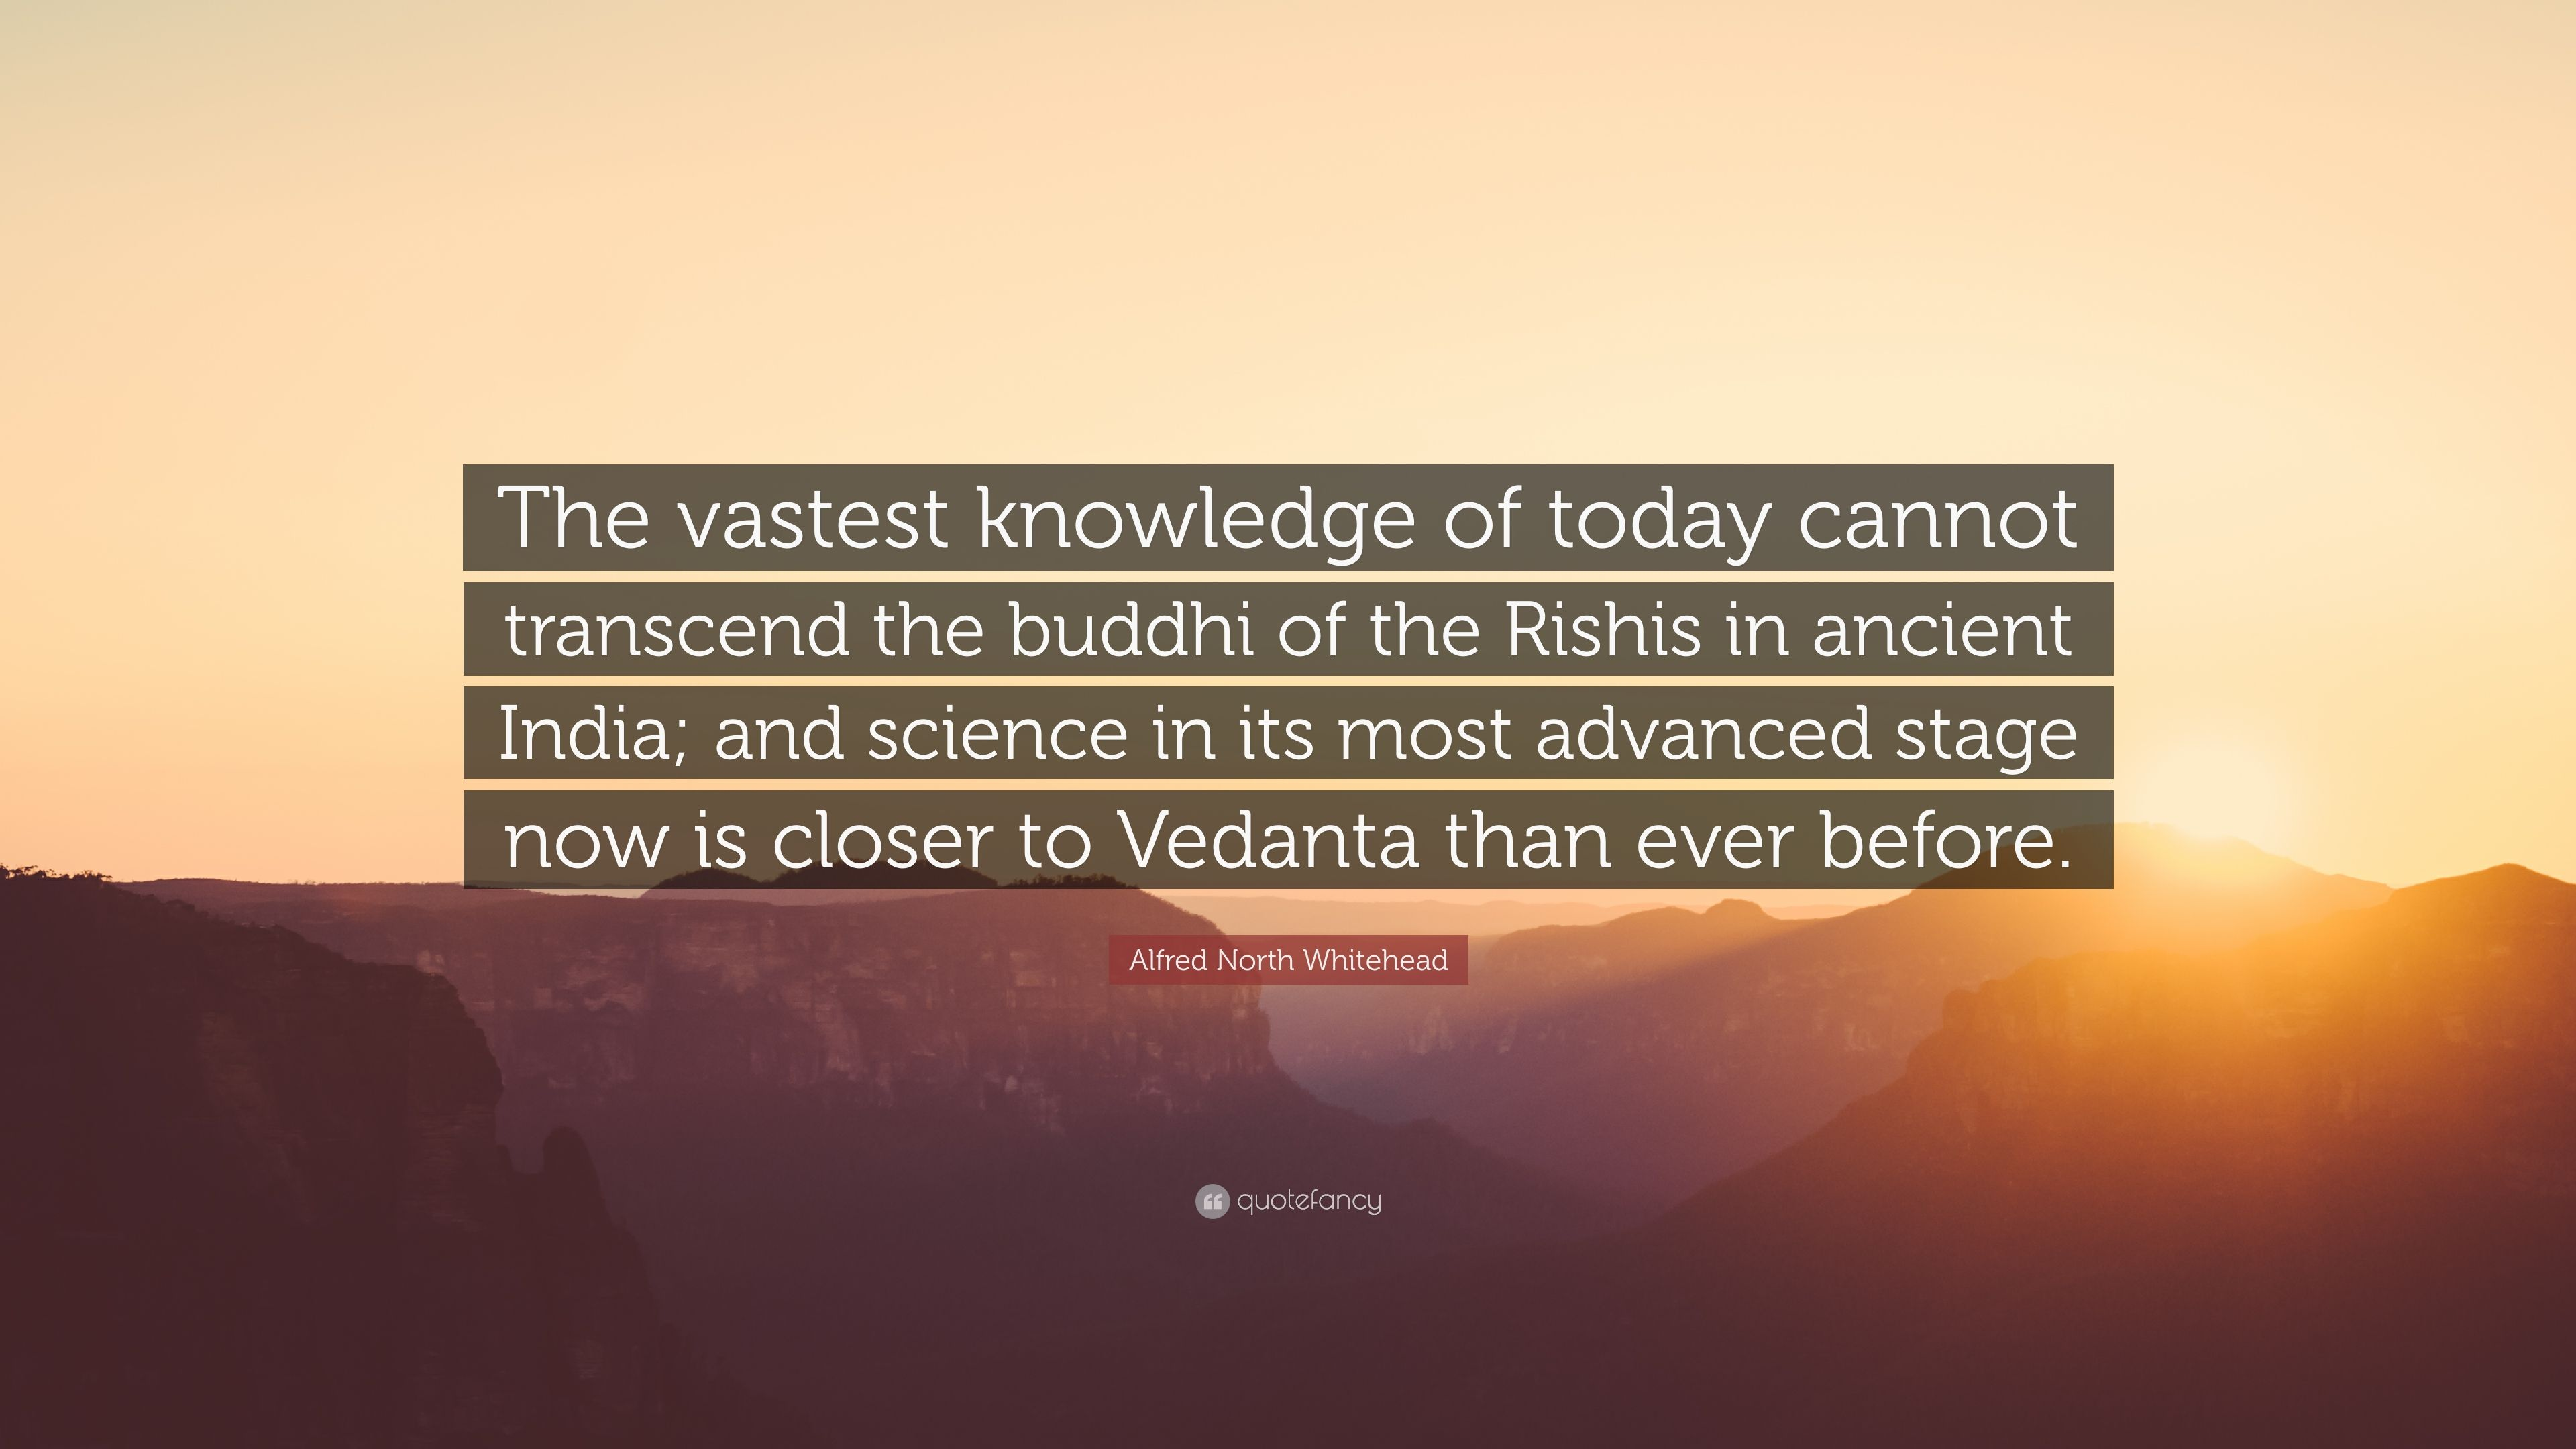 Alfred North Whitehead Quote The Vastest Knowledge Of Today Cannot Transcend The Buddhi Of